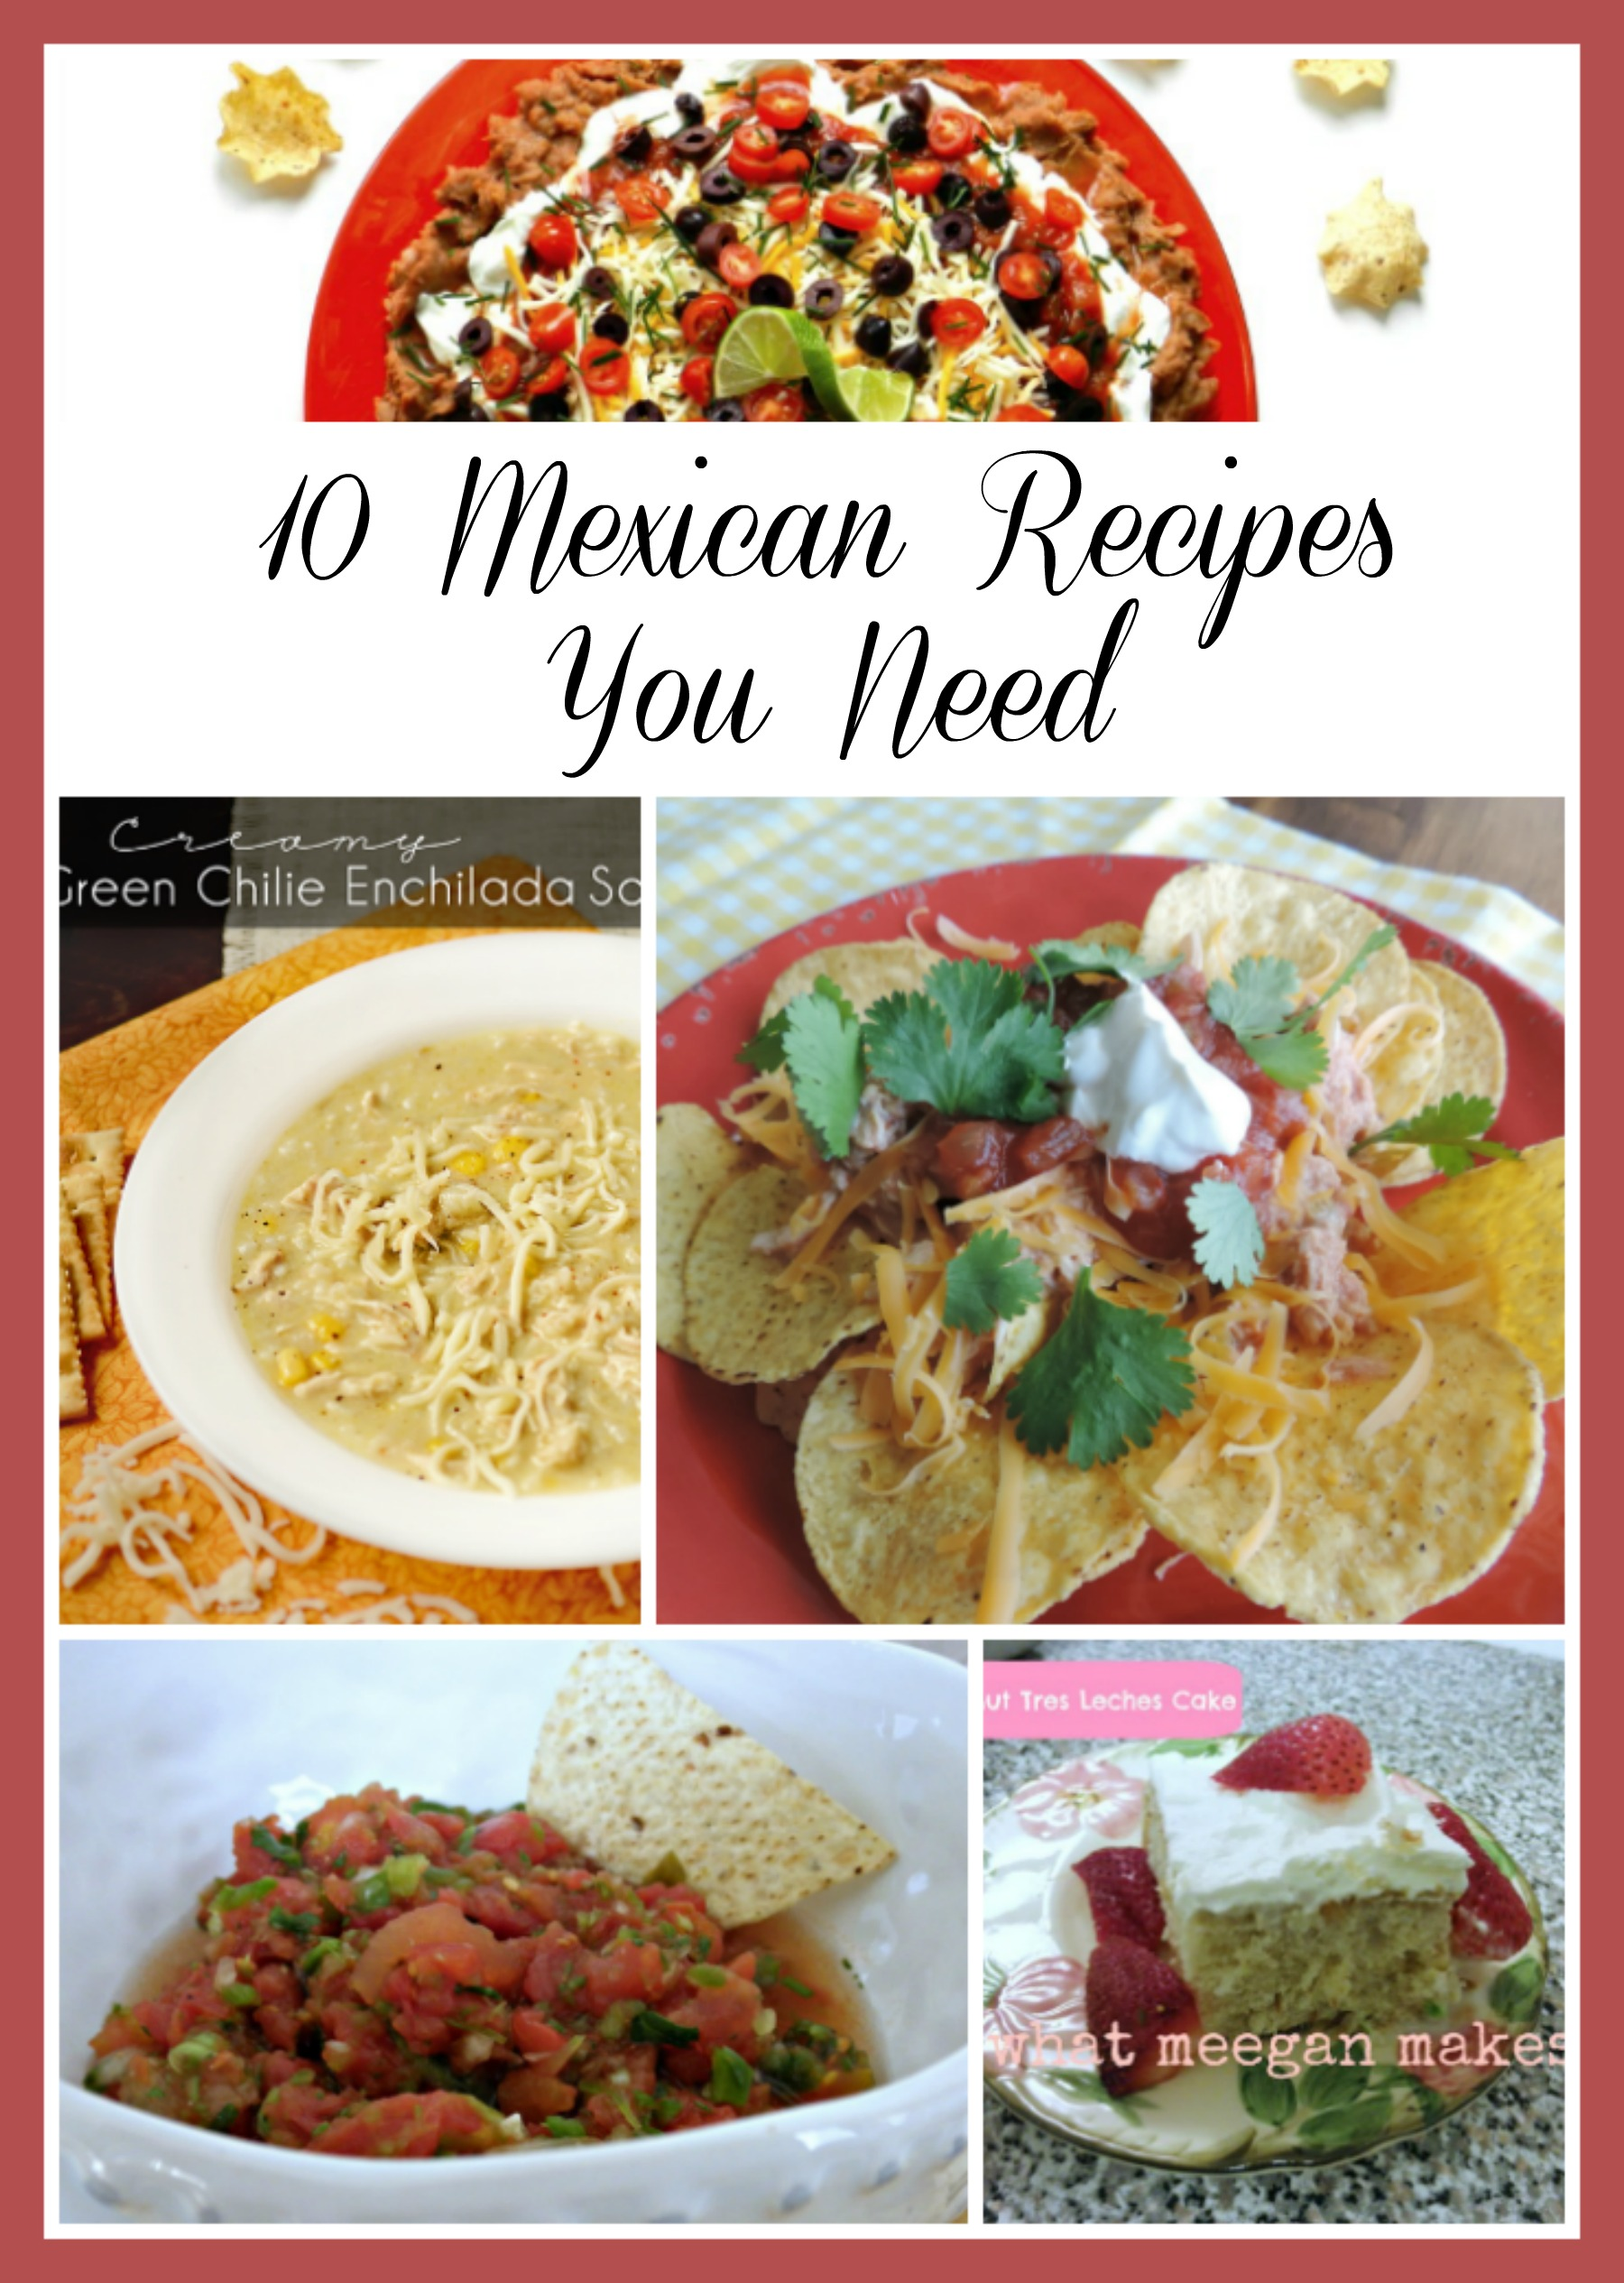 10 Mexican Recipes You Need